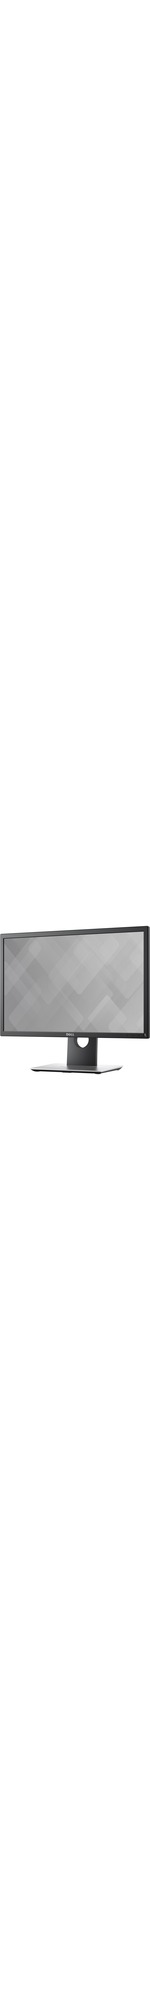 Dell P2217 55.9 cm 22And#34; LED LCD Monitor - 16:10 - 5 ms